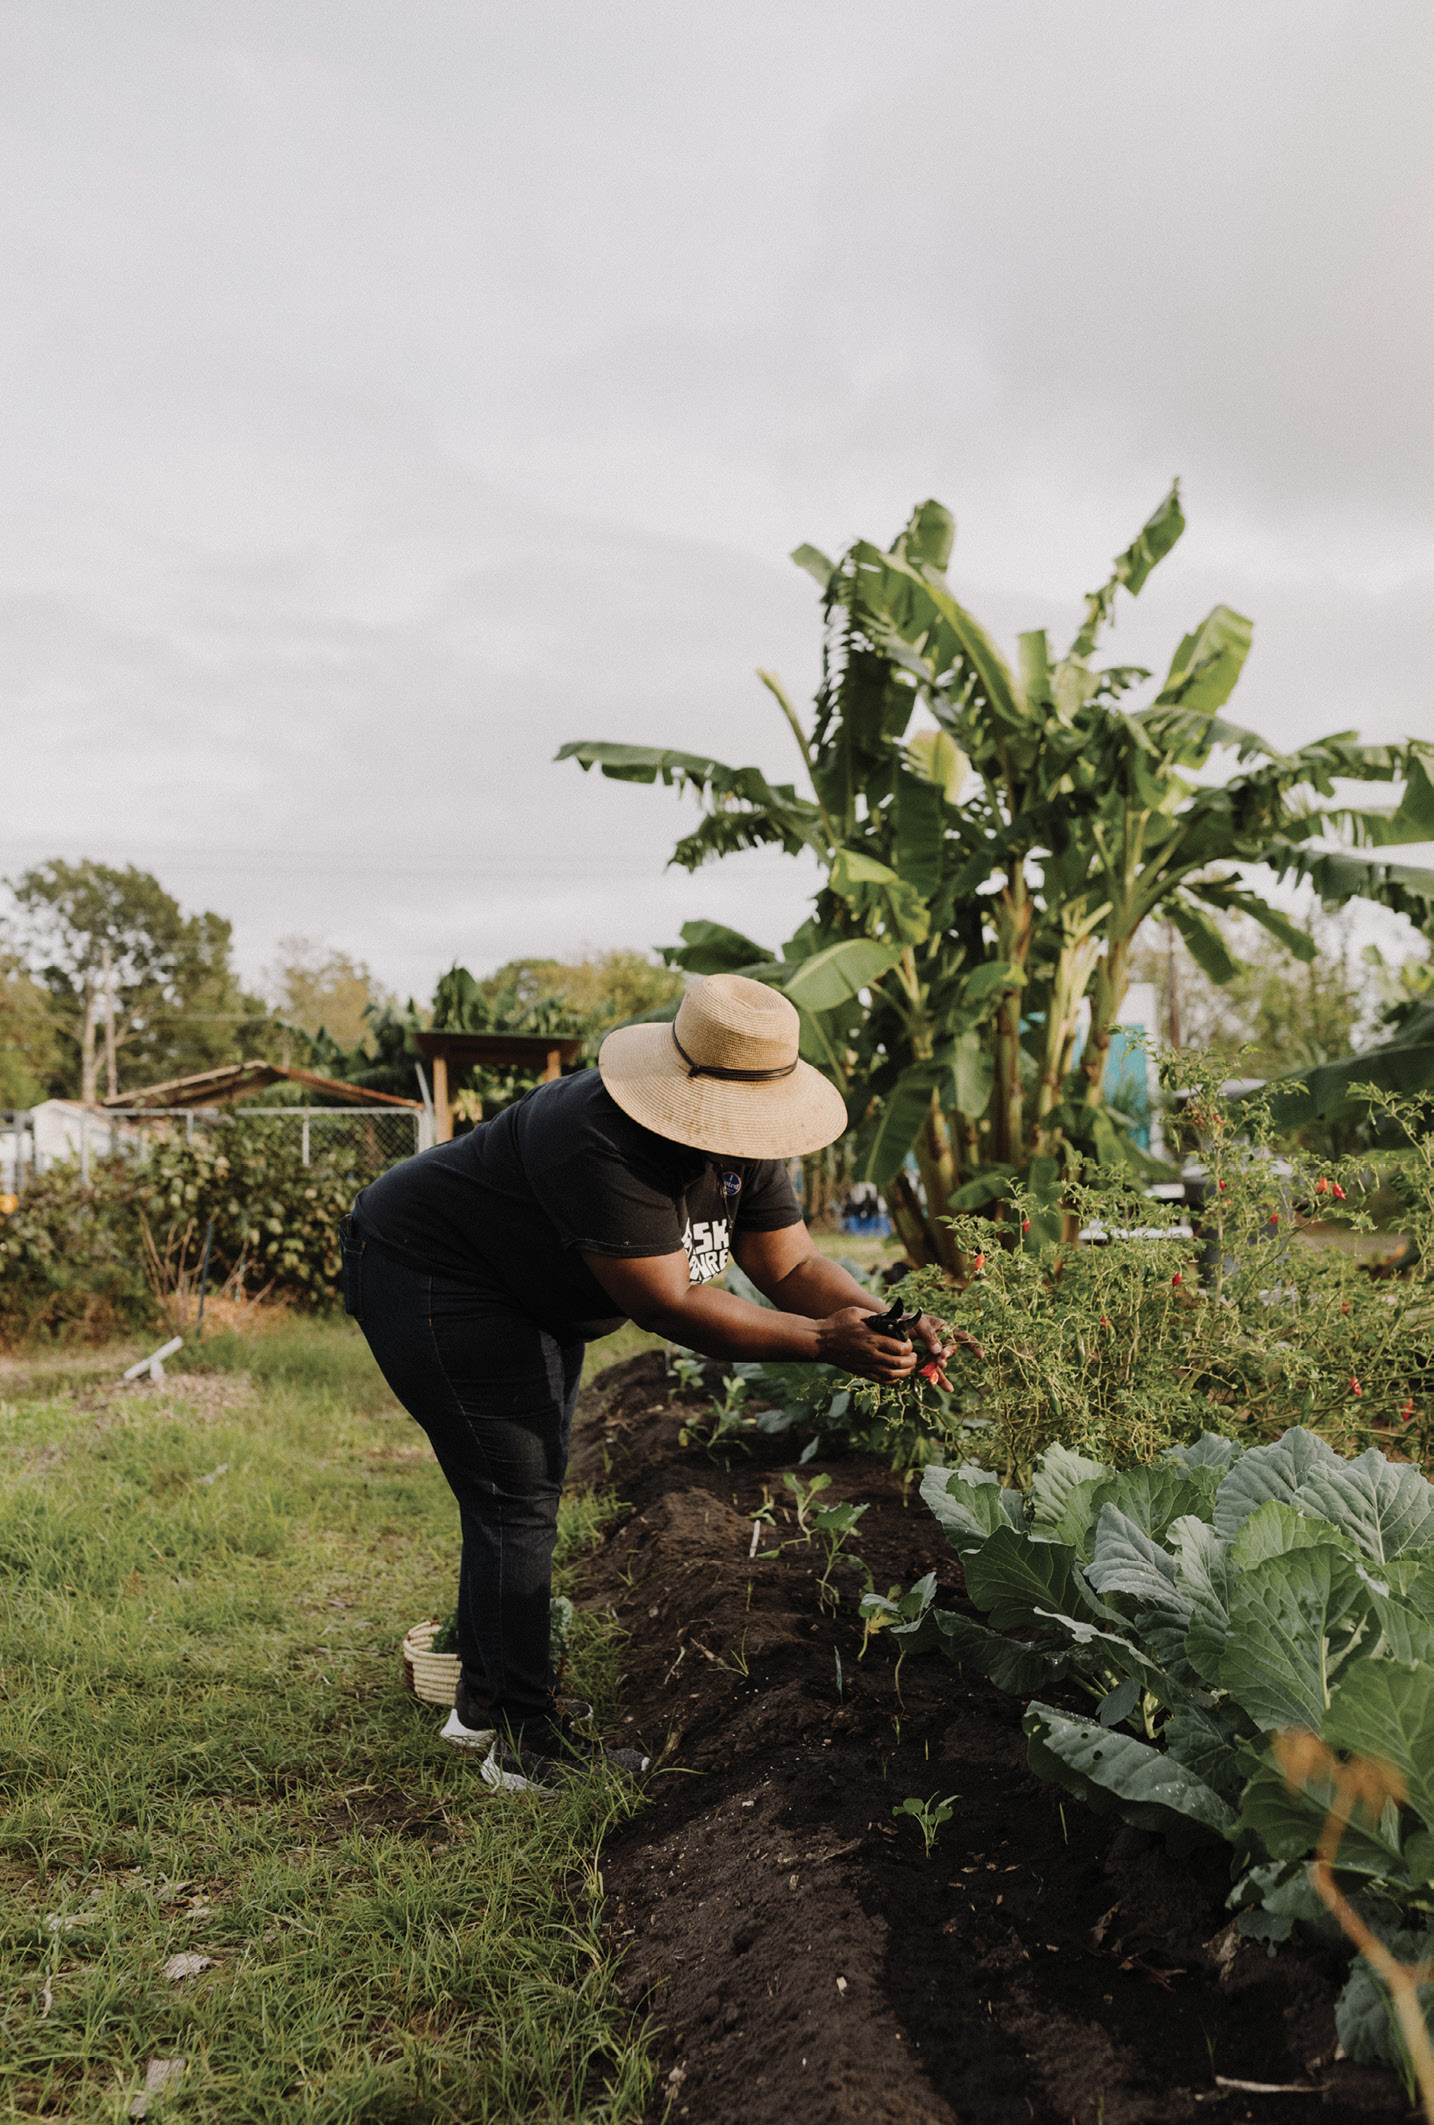 Green Thumb: Jenkins enjoys the hands-on, and nonstop, work of urban farming, from composting to planting to weeding and harvesting, but mostly she enjoys sharing her passion for a regenerative movement—one that breaks the cycle of poverty through growing health, jobs, and wealth.